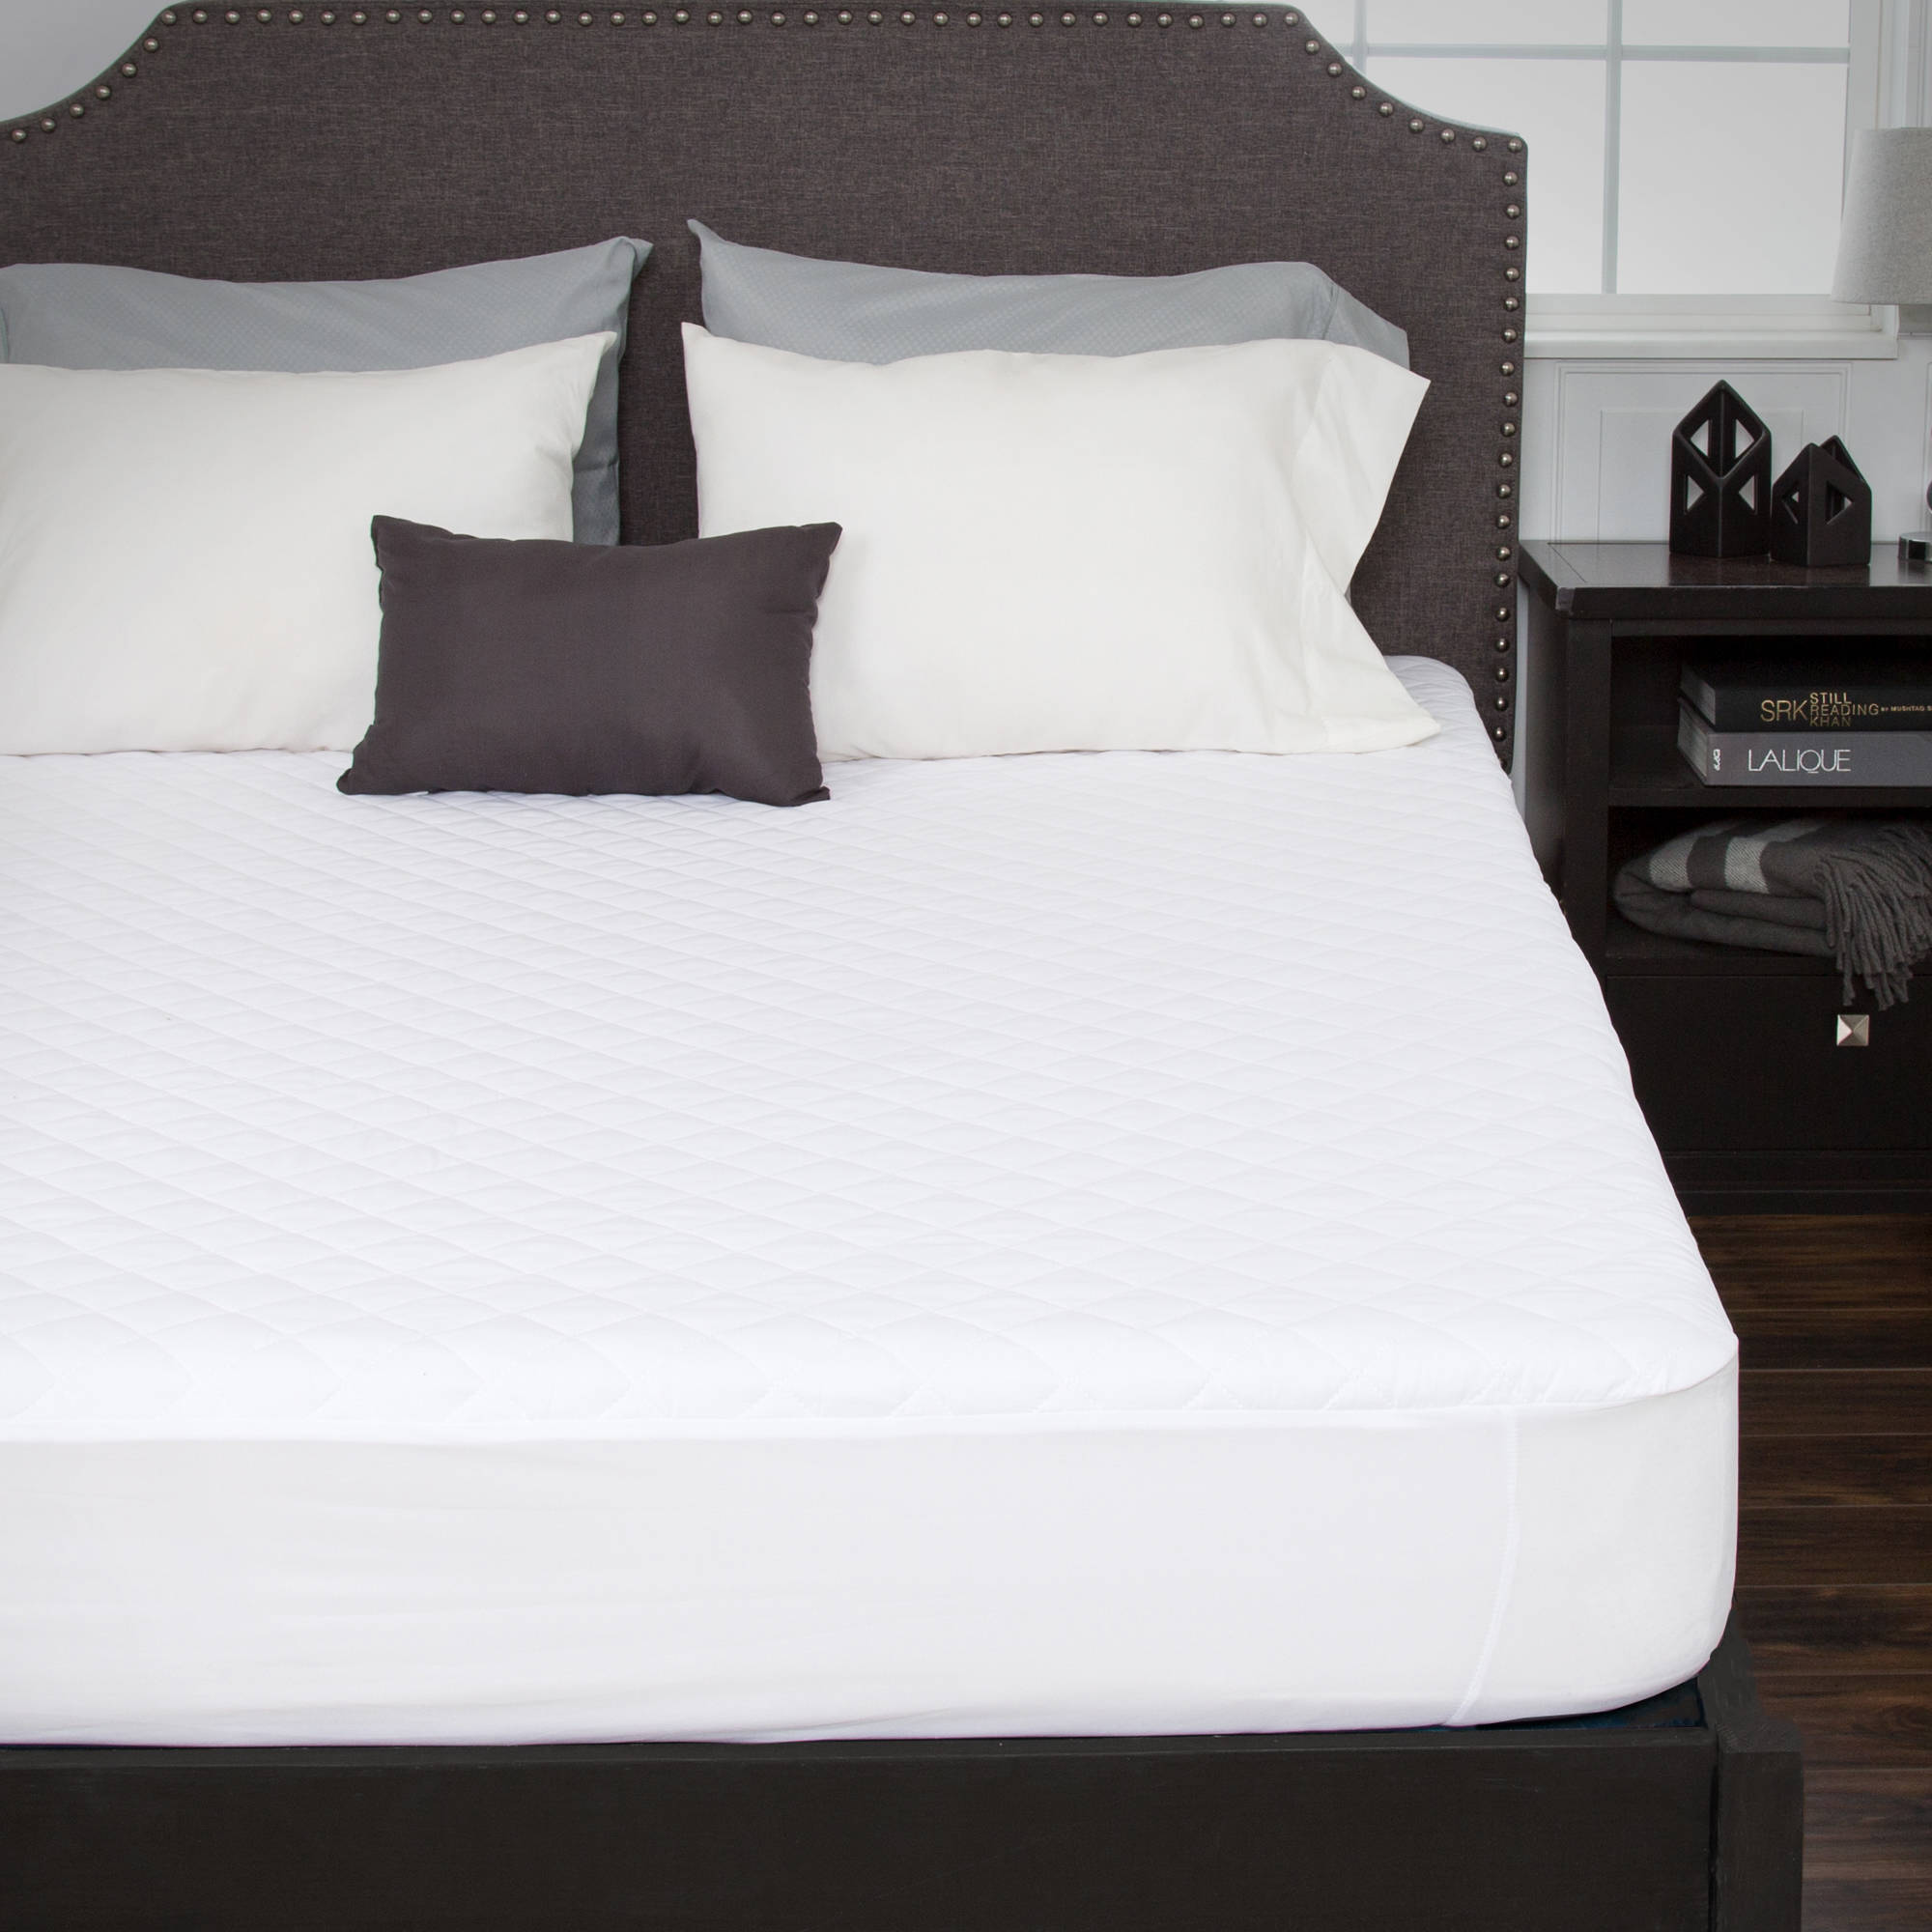 Somerset Home Waterproof Mattress Pad with Expandable Fitted Skirt